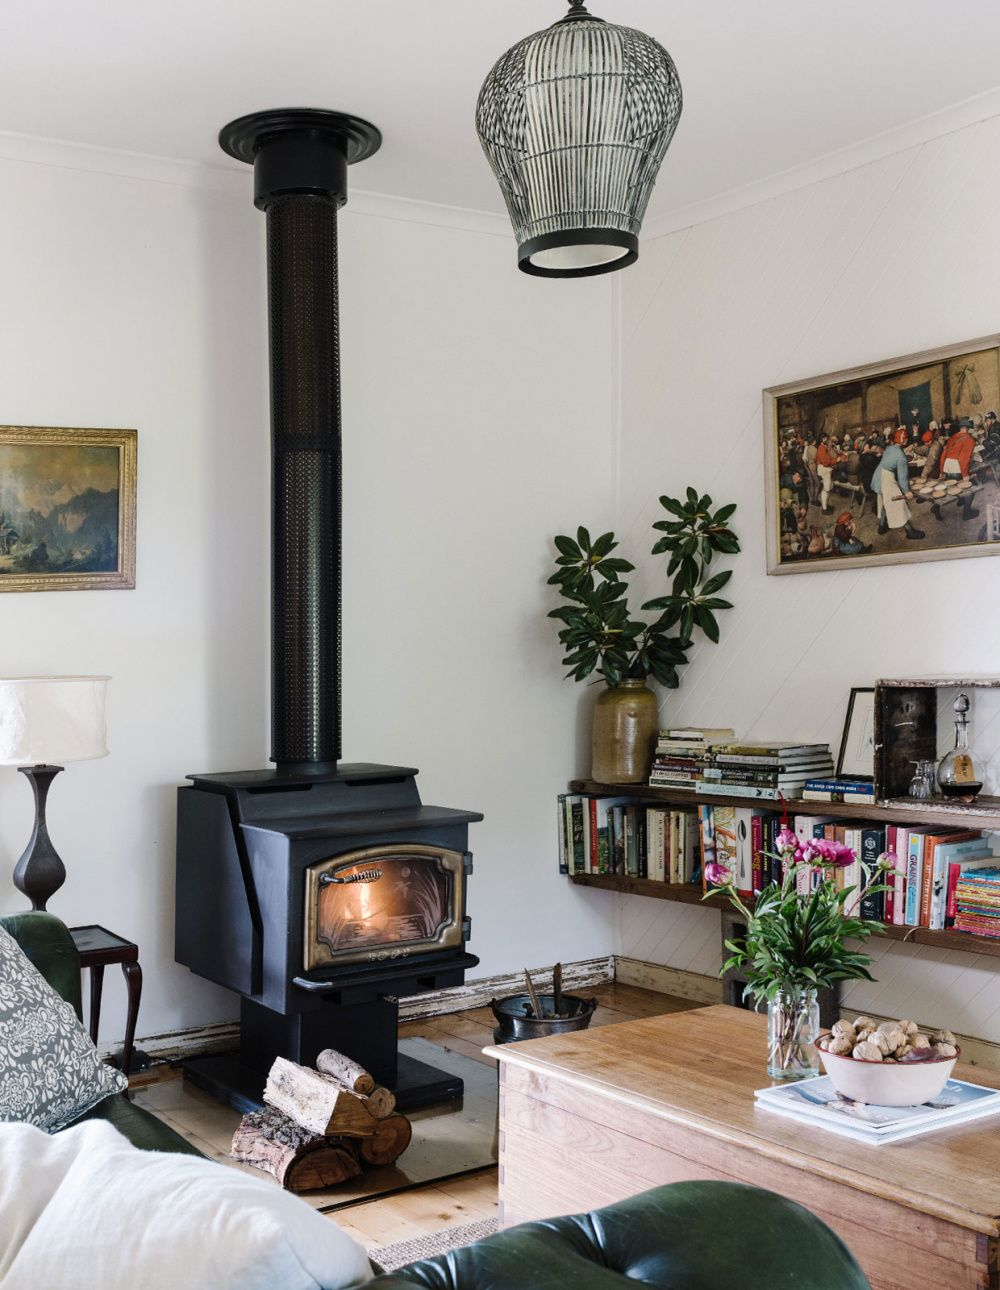 A Delightfully Rustic, Country Style Getaway in South Gippsland